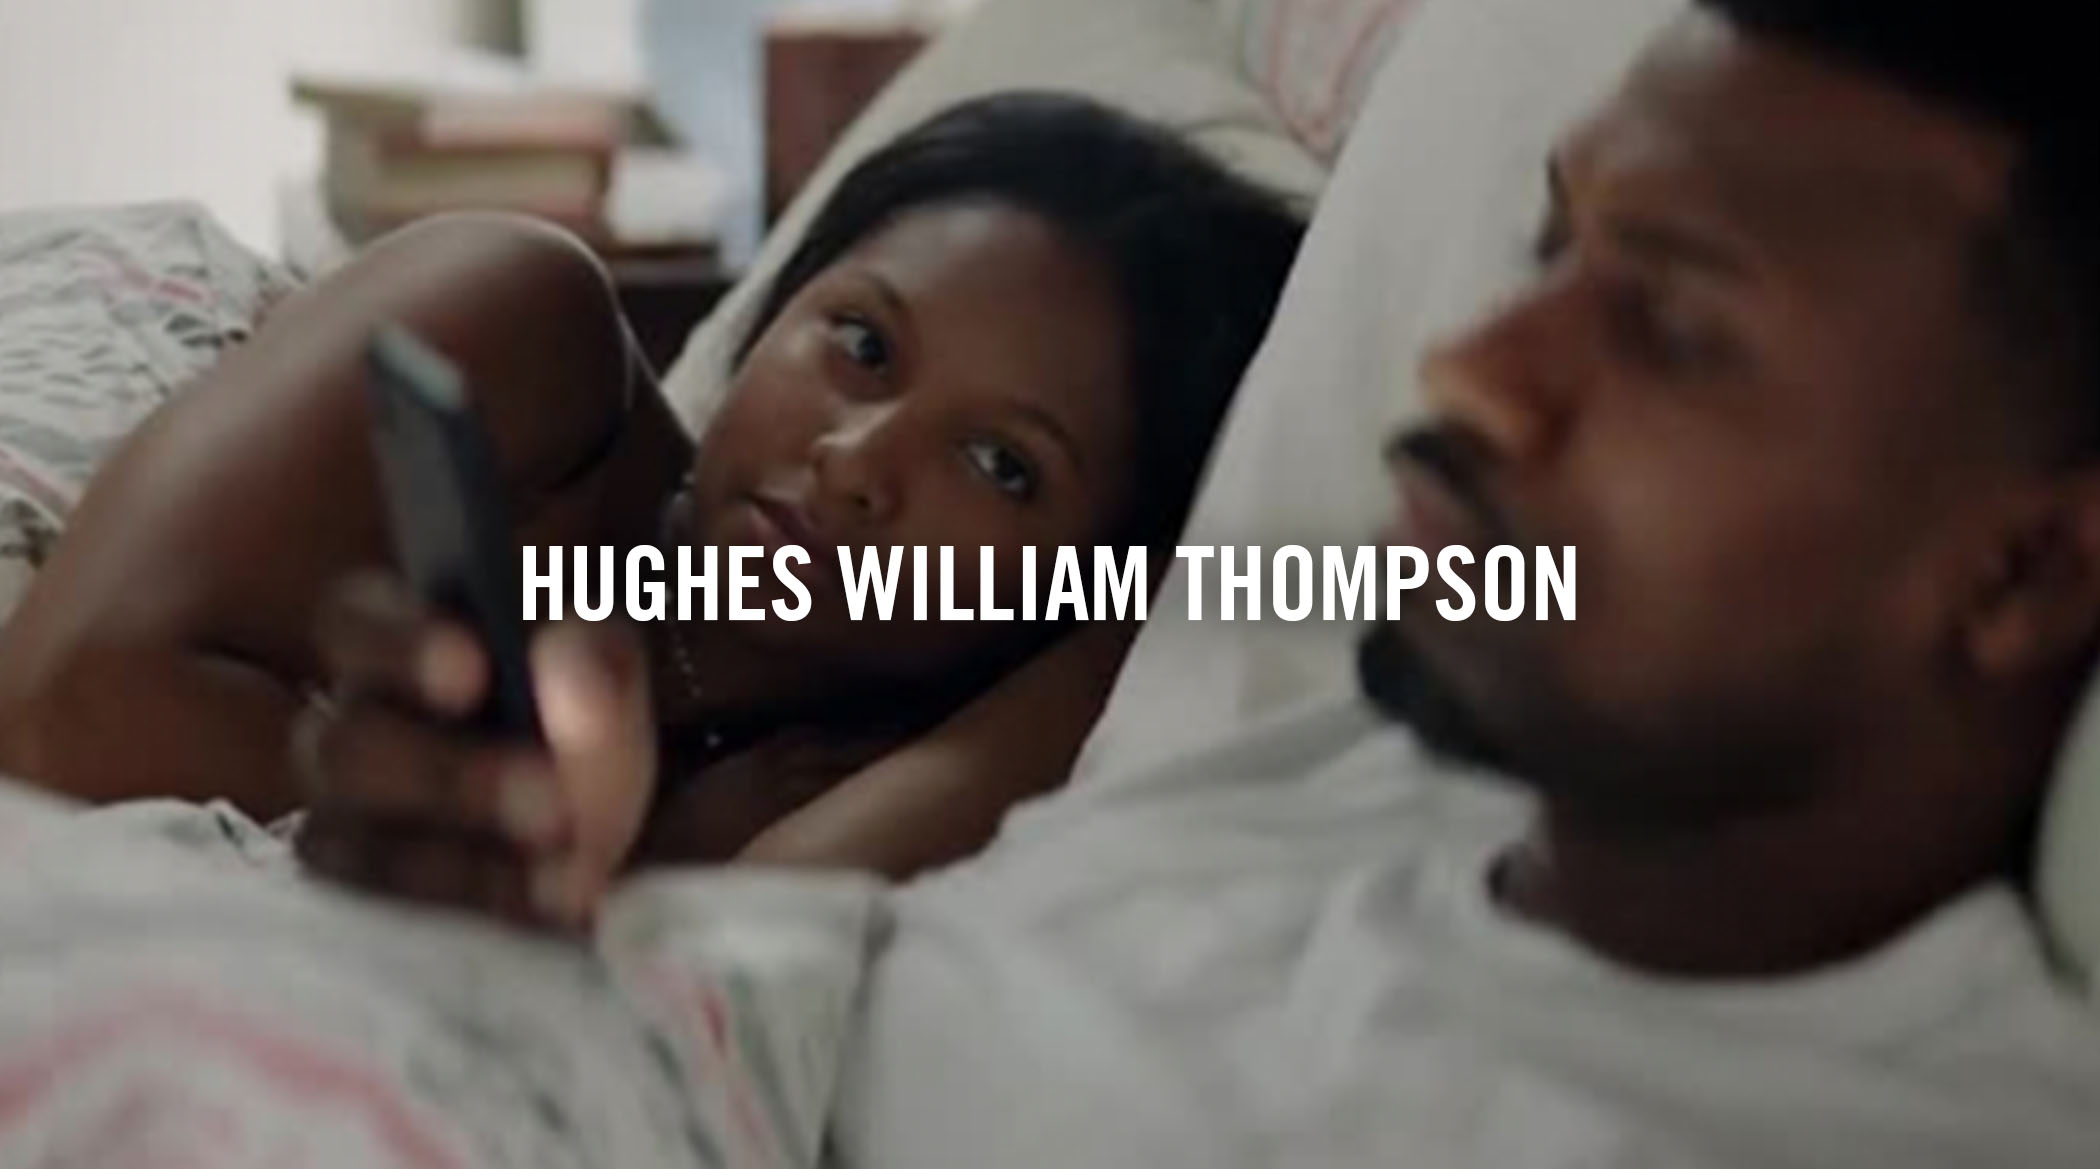 HughesWilliamThompson.jpg